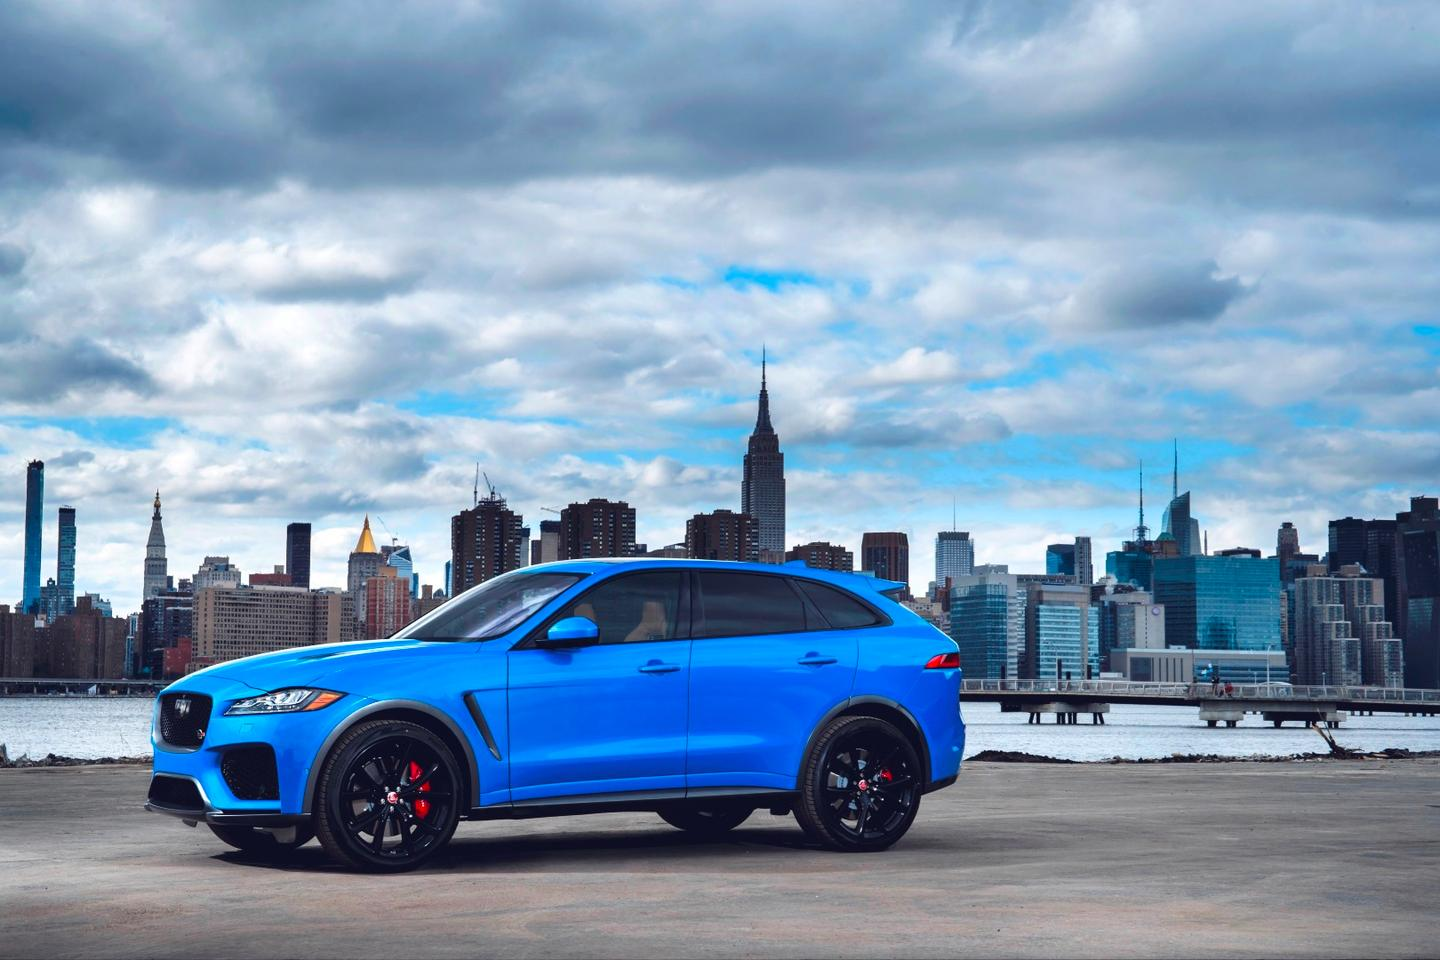 Jaguar has debuted the F-Pace SVR at the New York International Auto Show